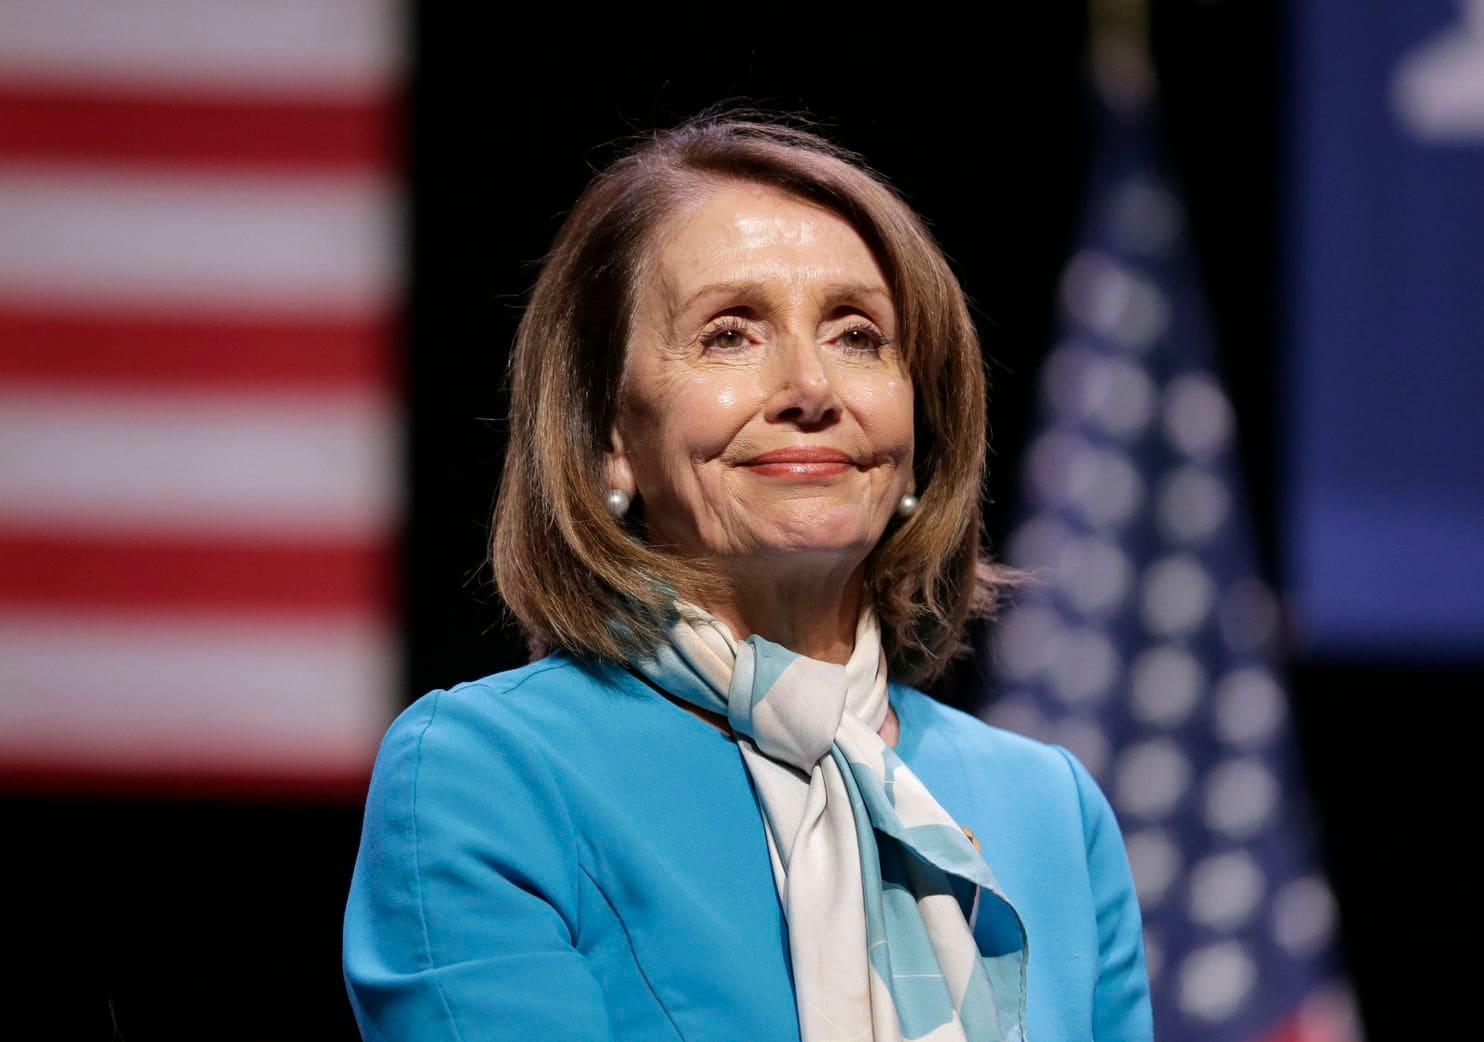 Nancy Pelosi, Politician (Speaker of the United States House of Representatives)